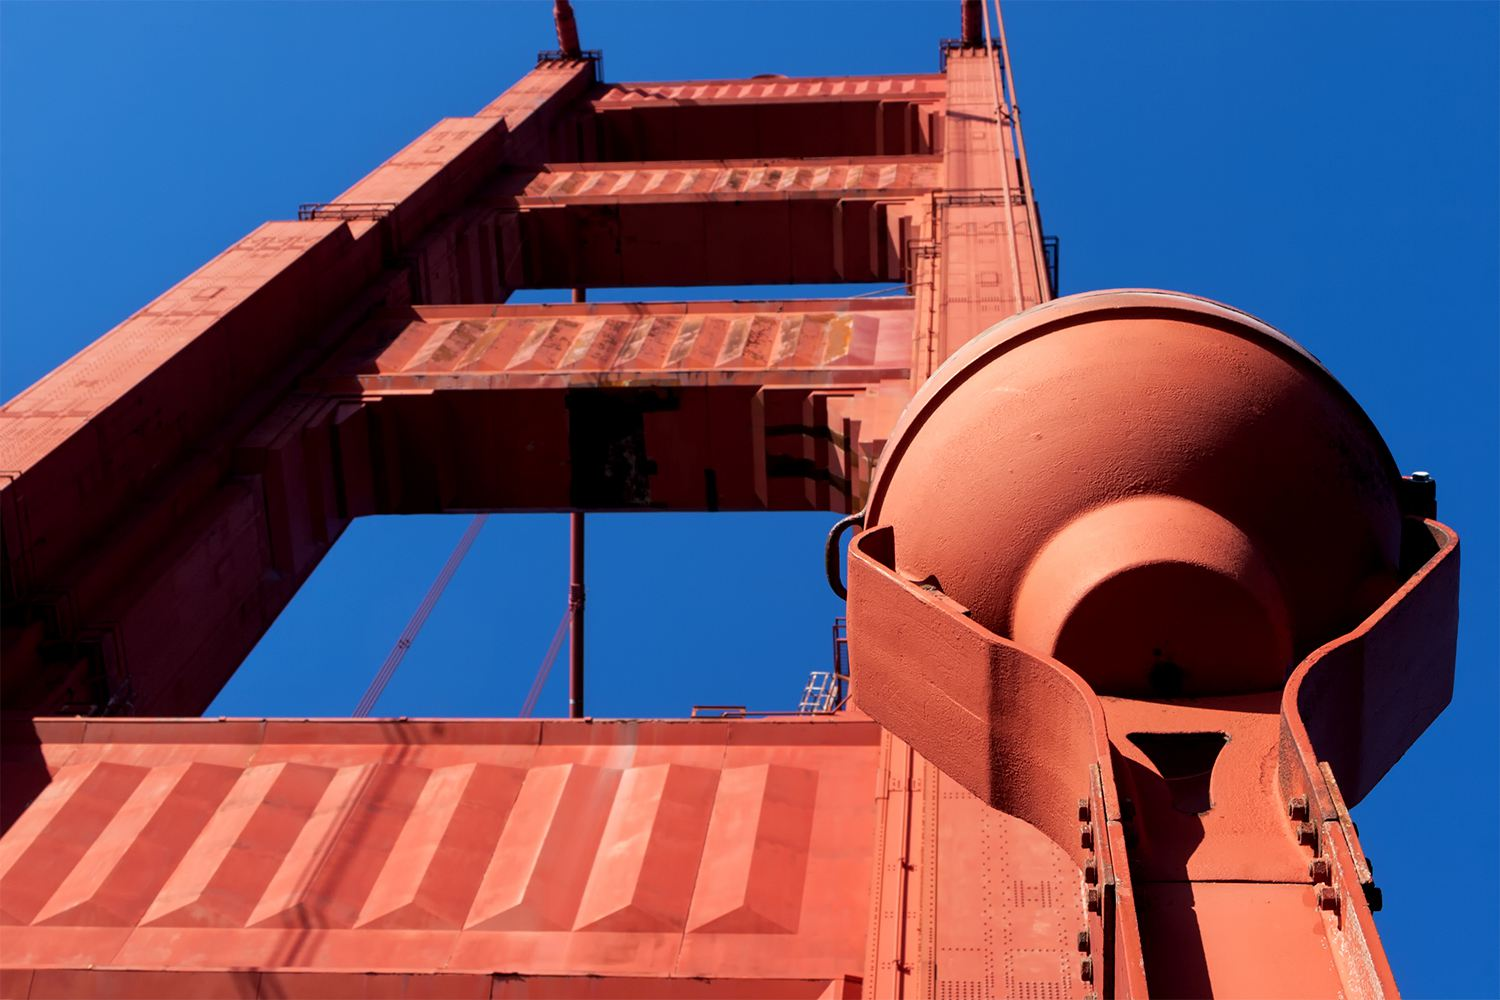 Looking up at One of the Golden Gate Bridge Towers